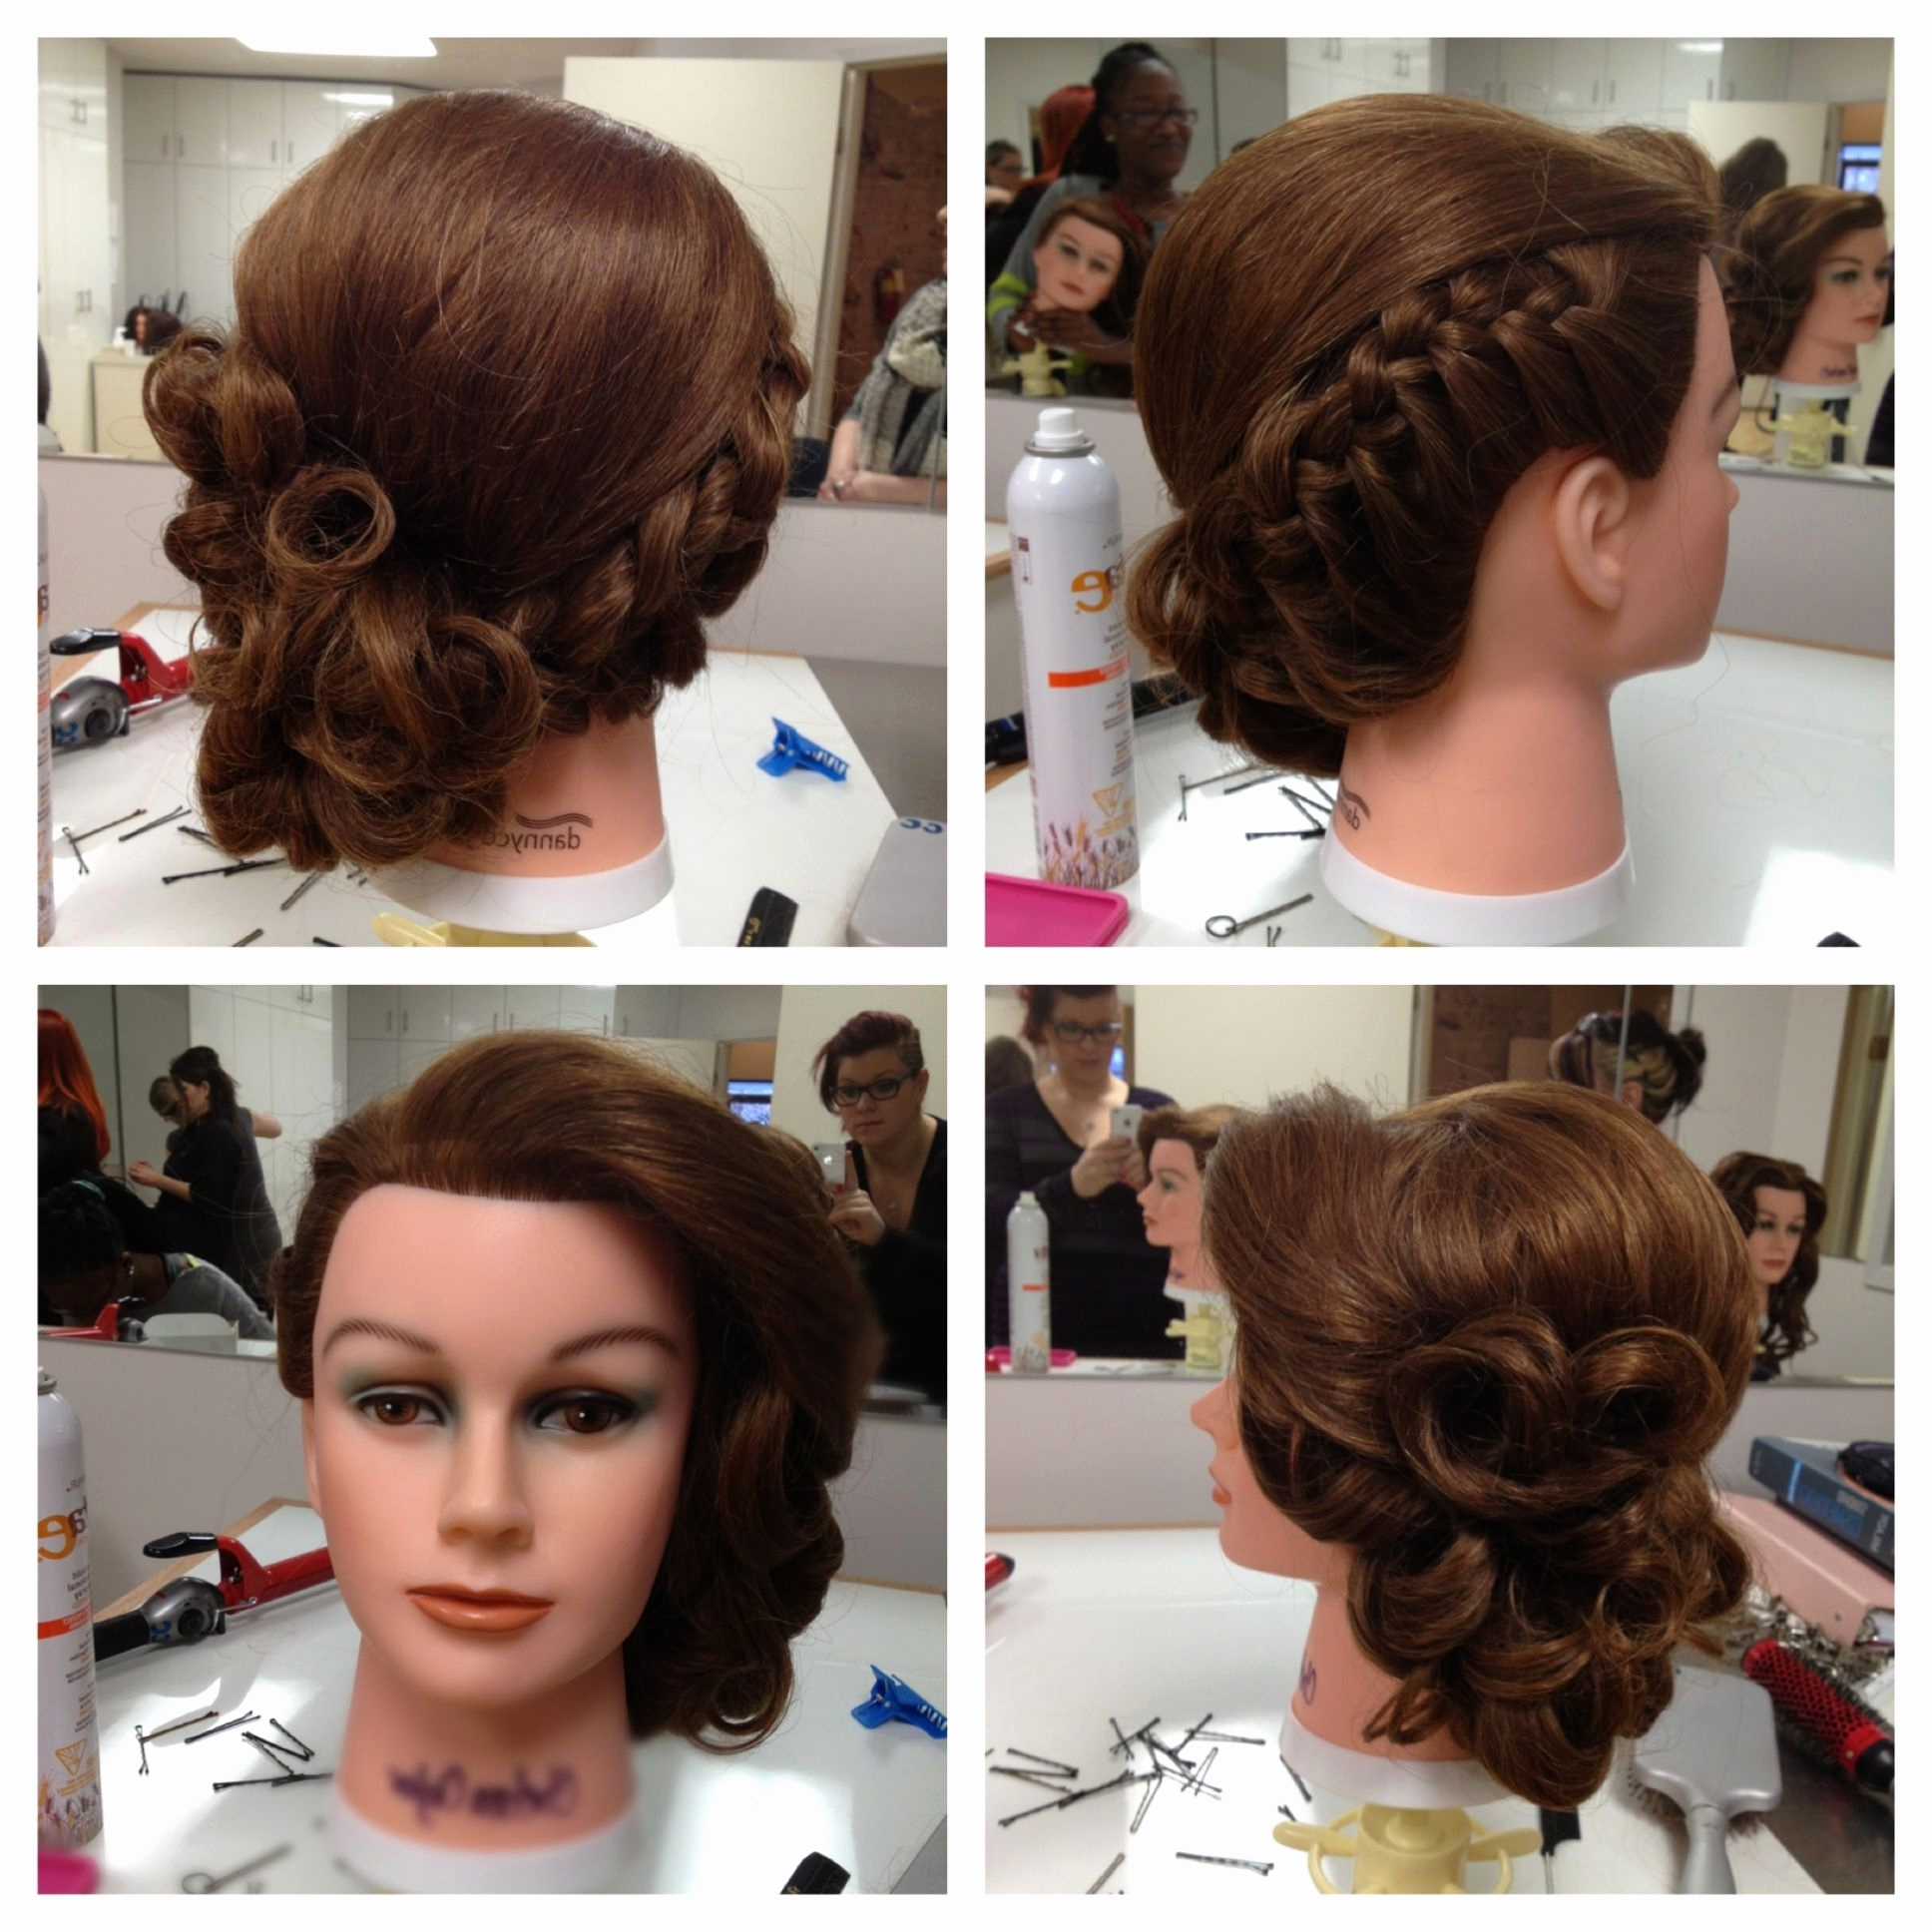 Sensational Pin Curl Wedding Hairstyles – Hair Inspiration Intended For Well Known Pin Curls Wedding Hairstyles (View 9 of 15)